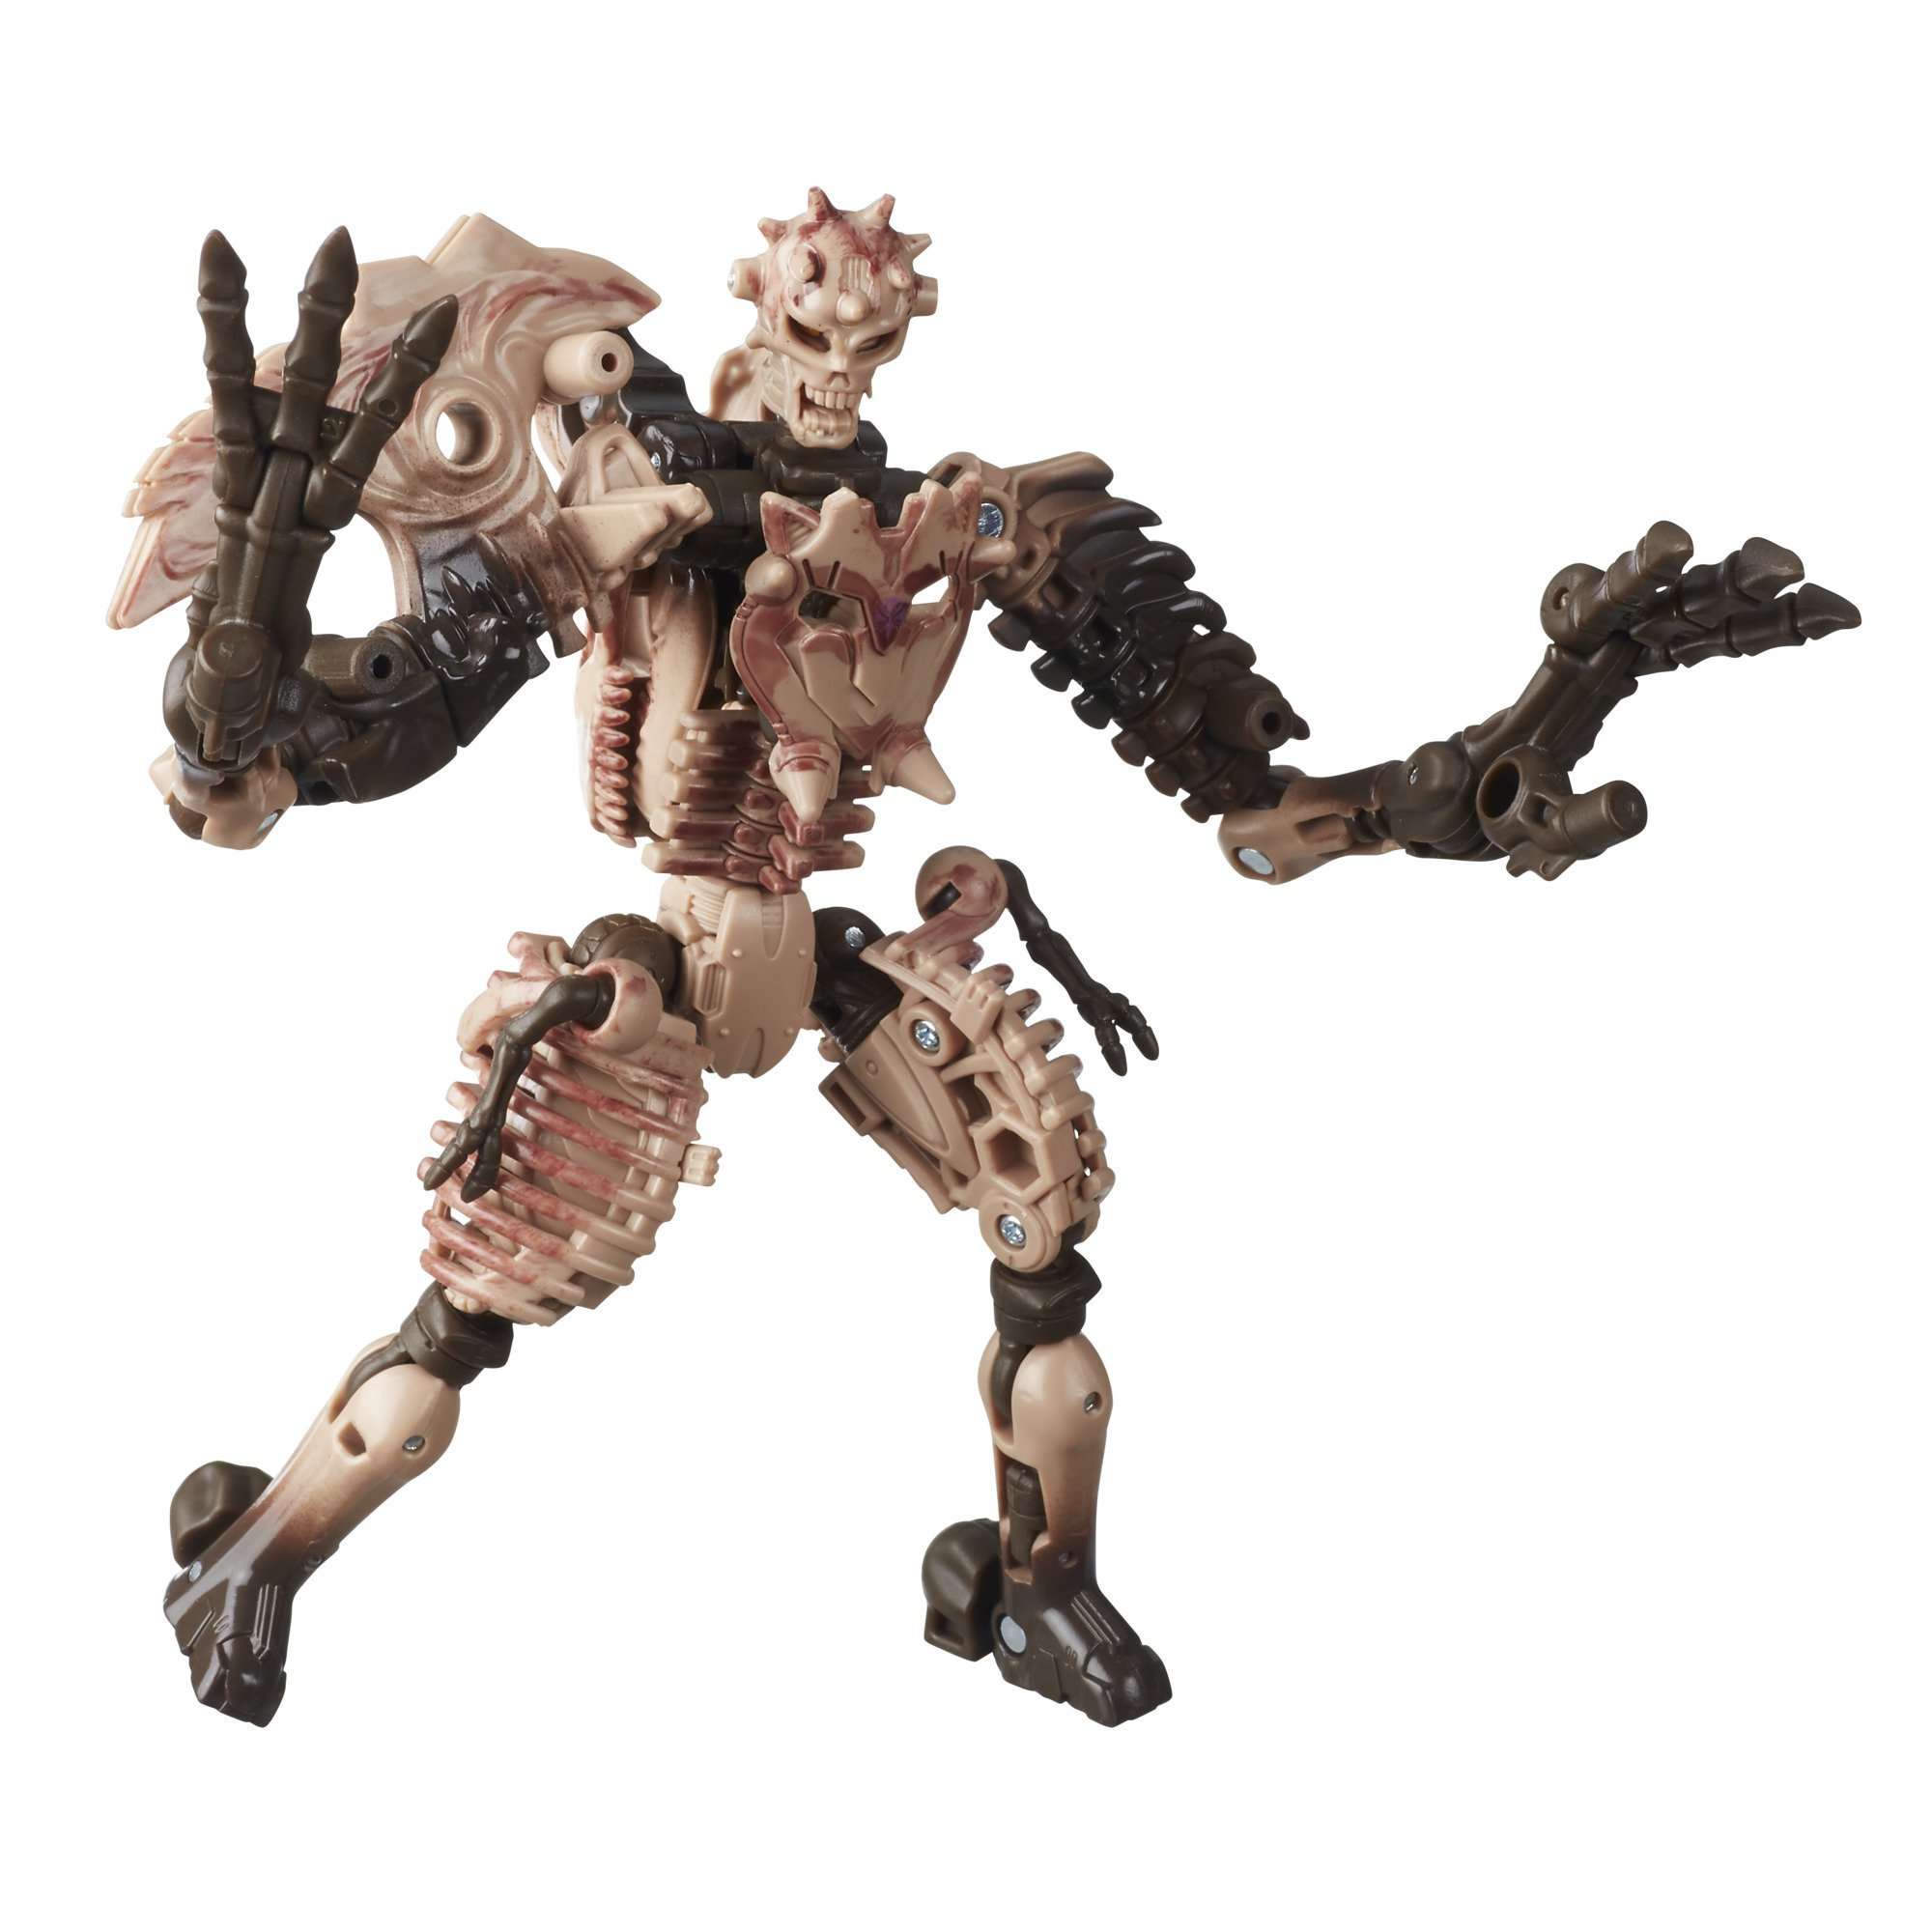 Transformers - Generations War For Cybertron - Kingdom Deluxe Paleotrex(F0672)